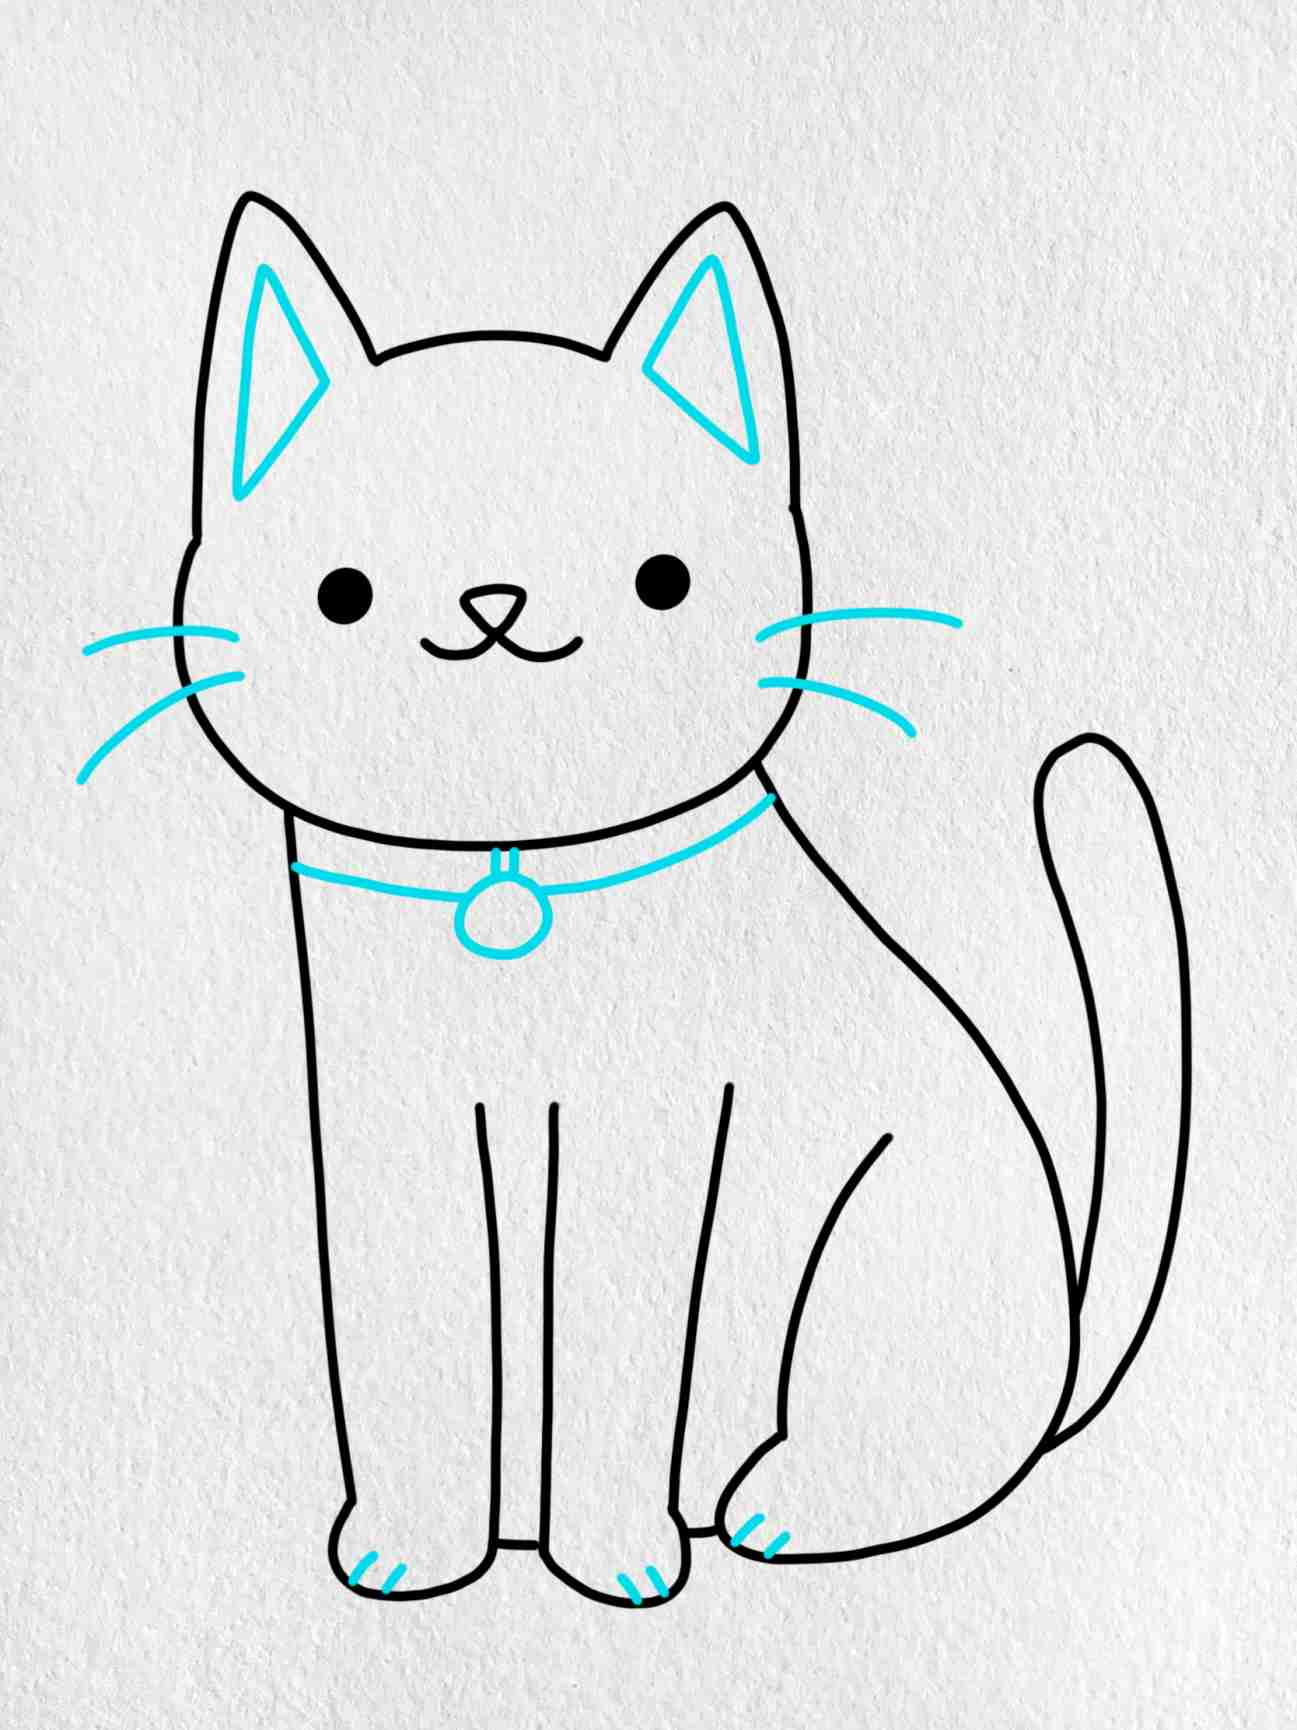 Cat Drawing For Kids: Step 5